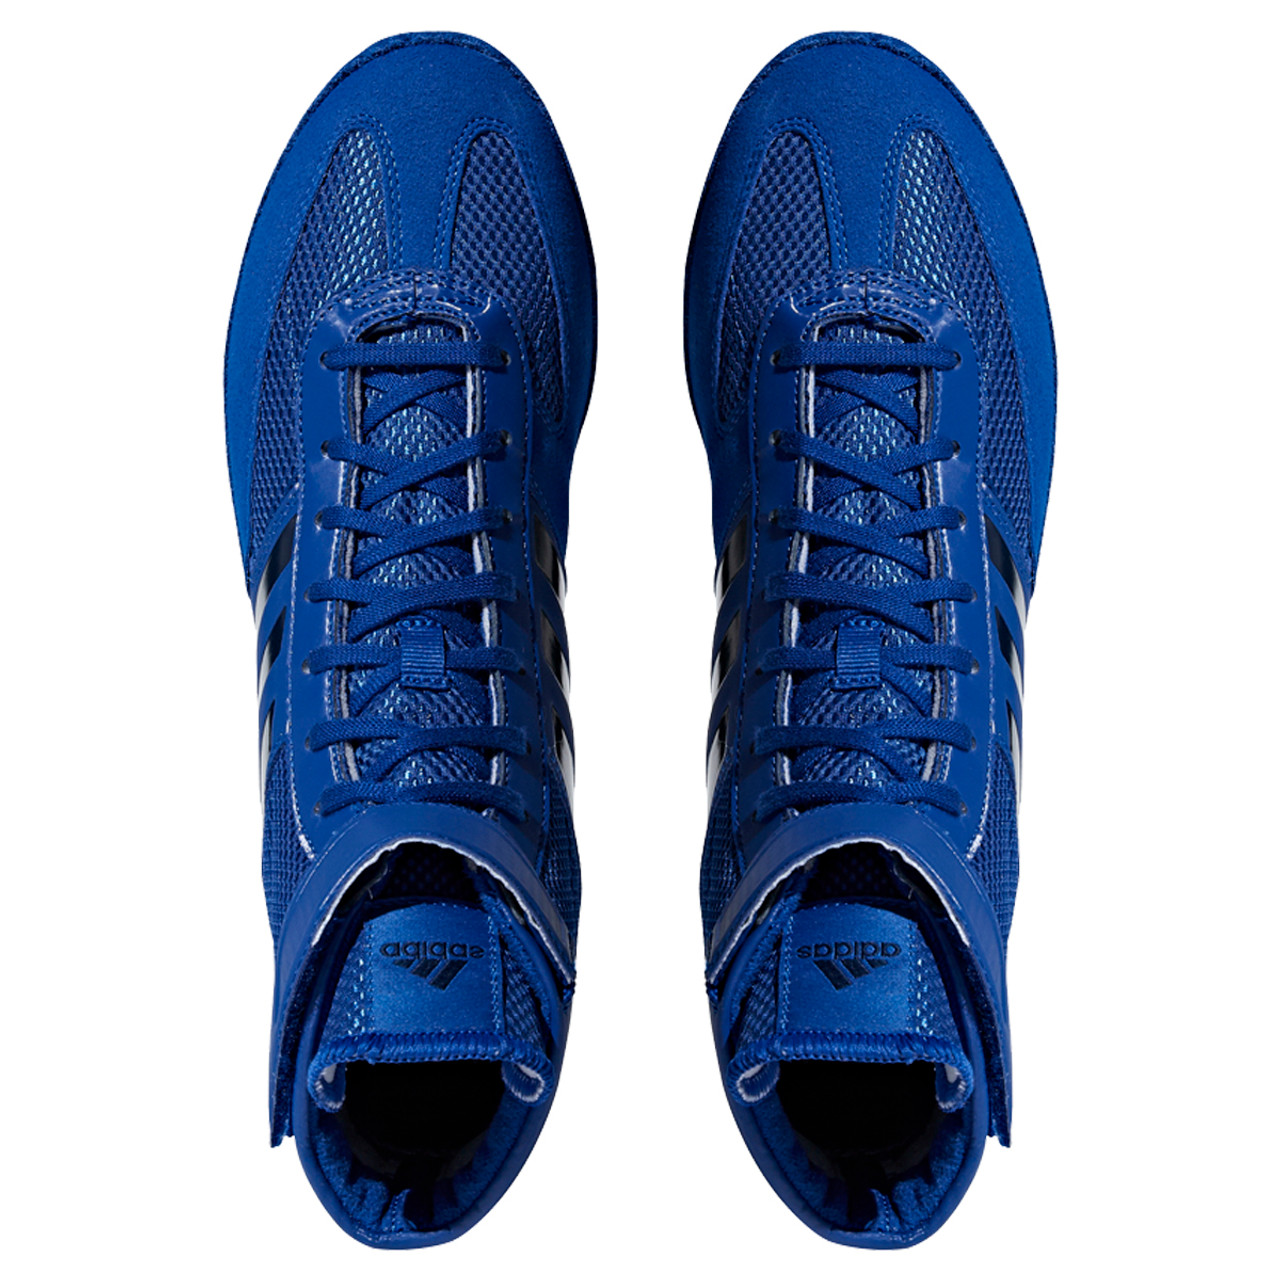 c8a6165bf54 Adidas Combat Speed 5 Men s Wrestling Shoes AC7500 - Royal